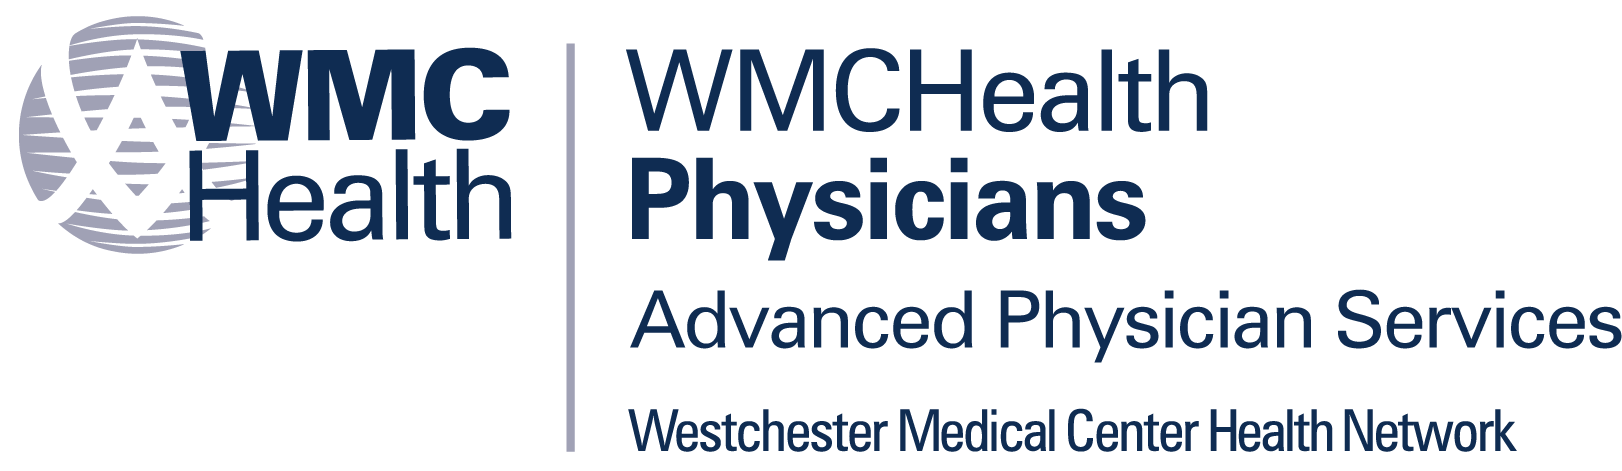 Advanced Physician Services